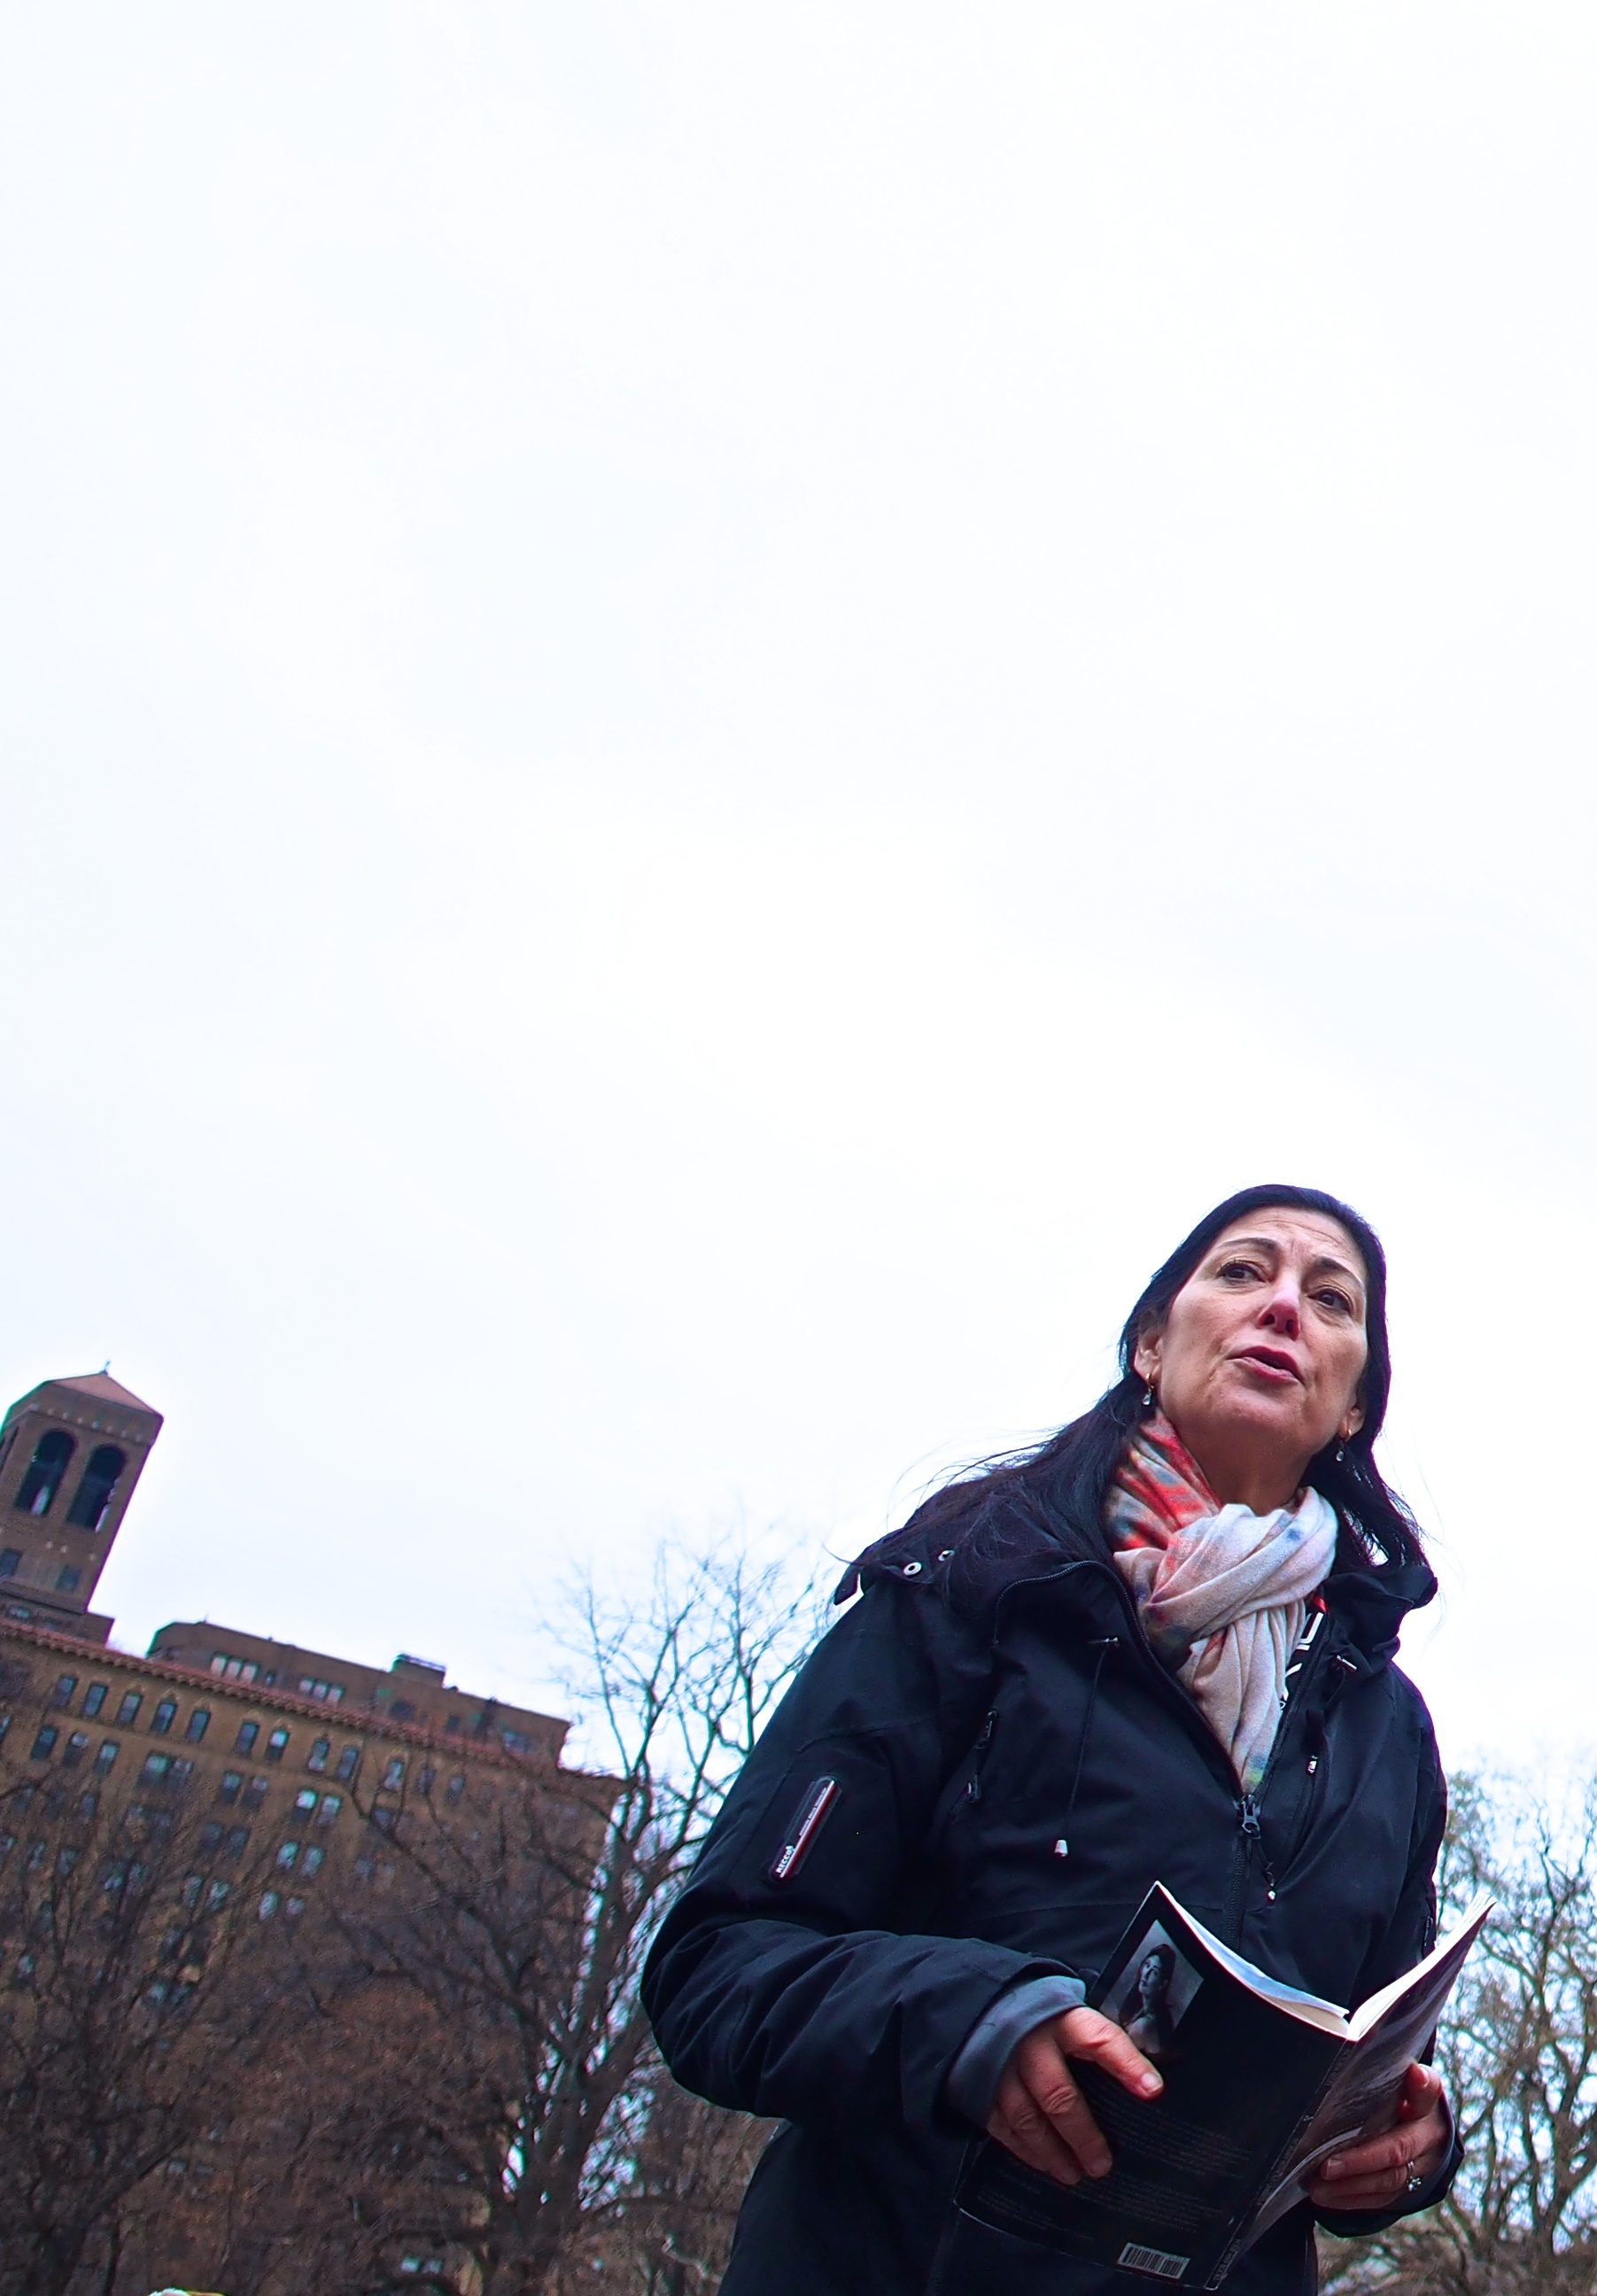 Victoria Redel attends a rally at Washington Square, New York in December 2014